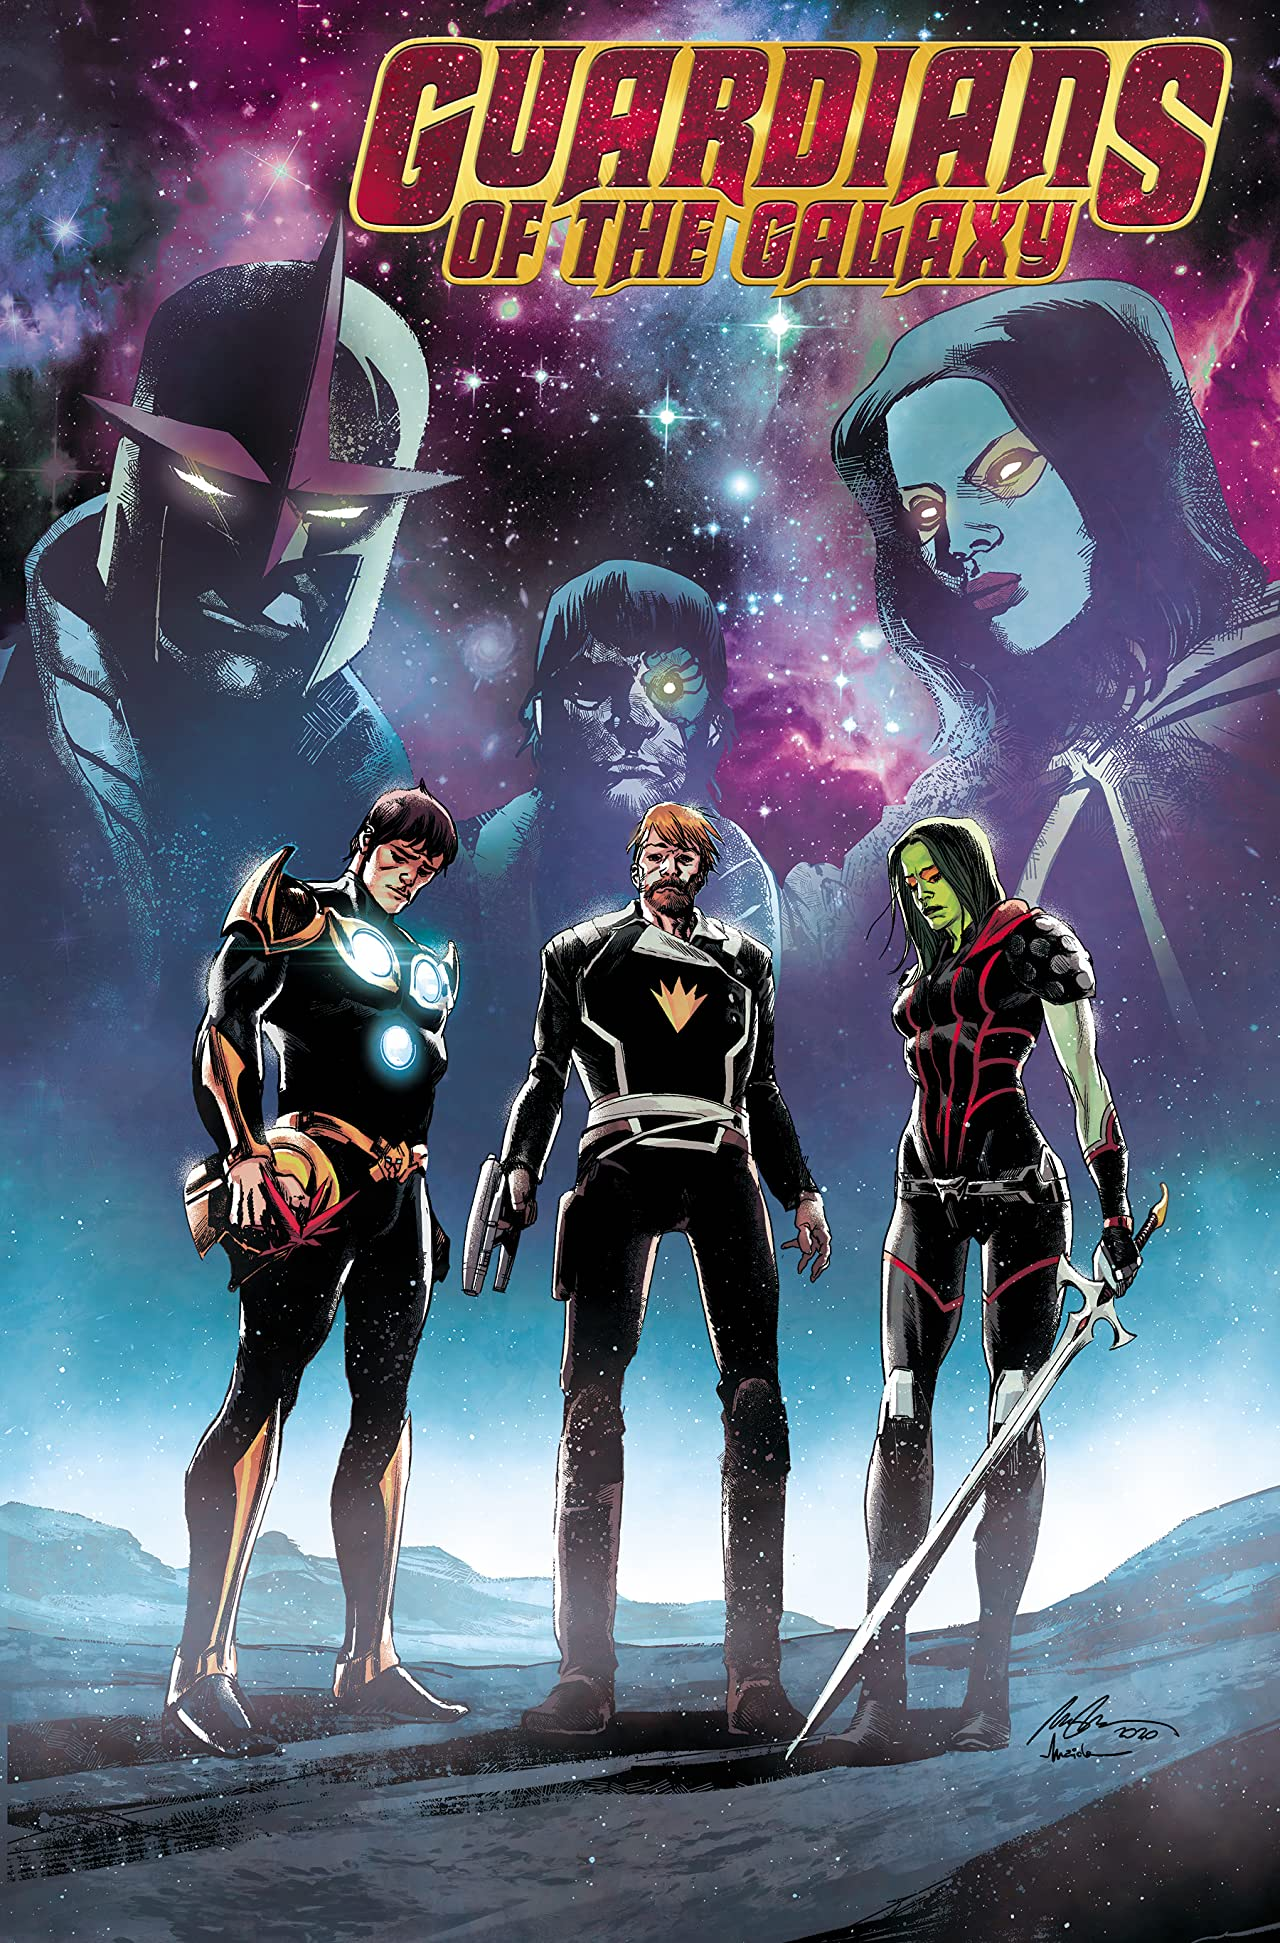 Guardians Of The Galaxy By Al Ewing Vol. 2: Here We Make Our Stand (Trade Paperback)